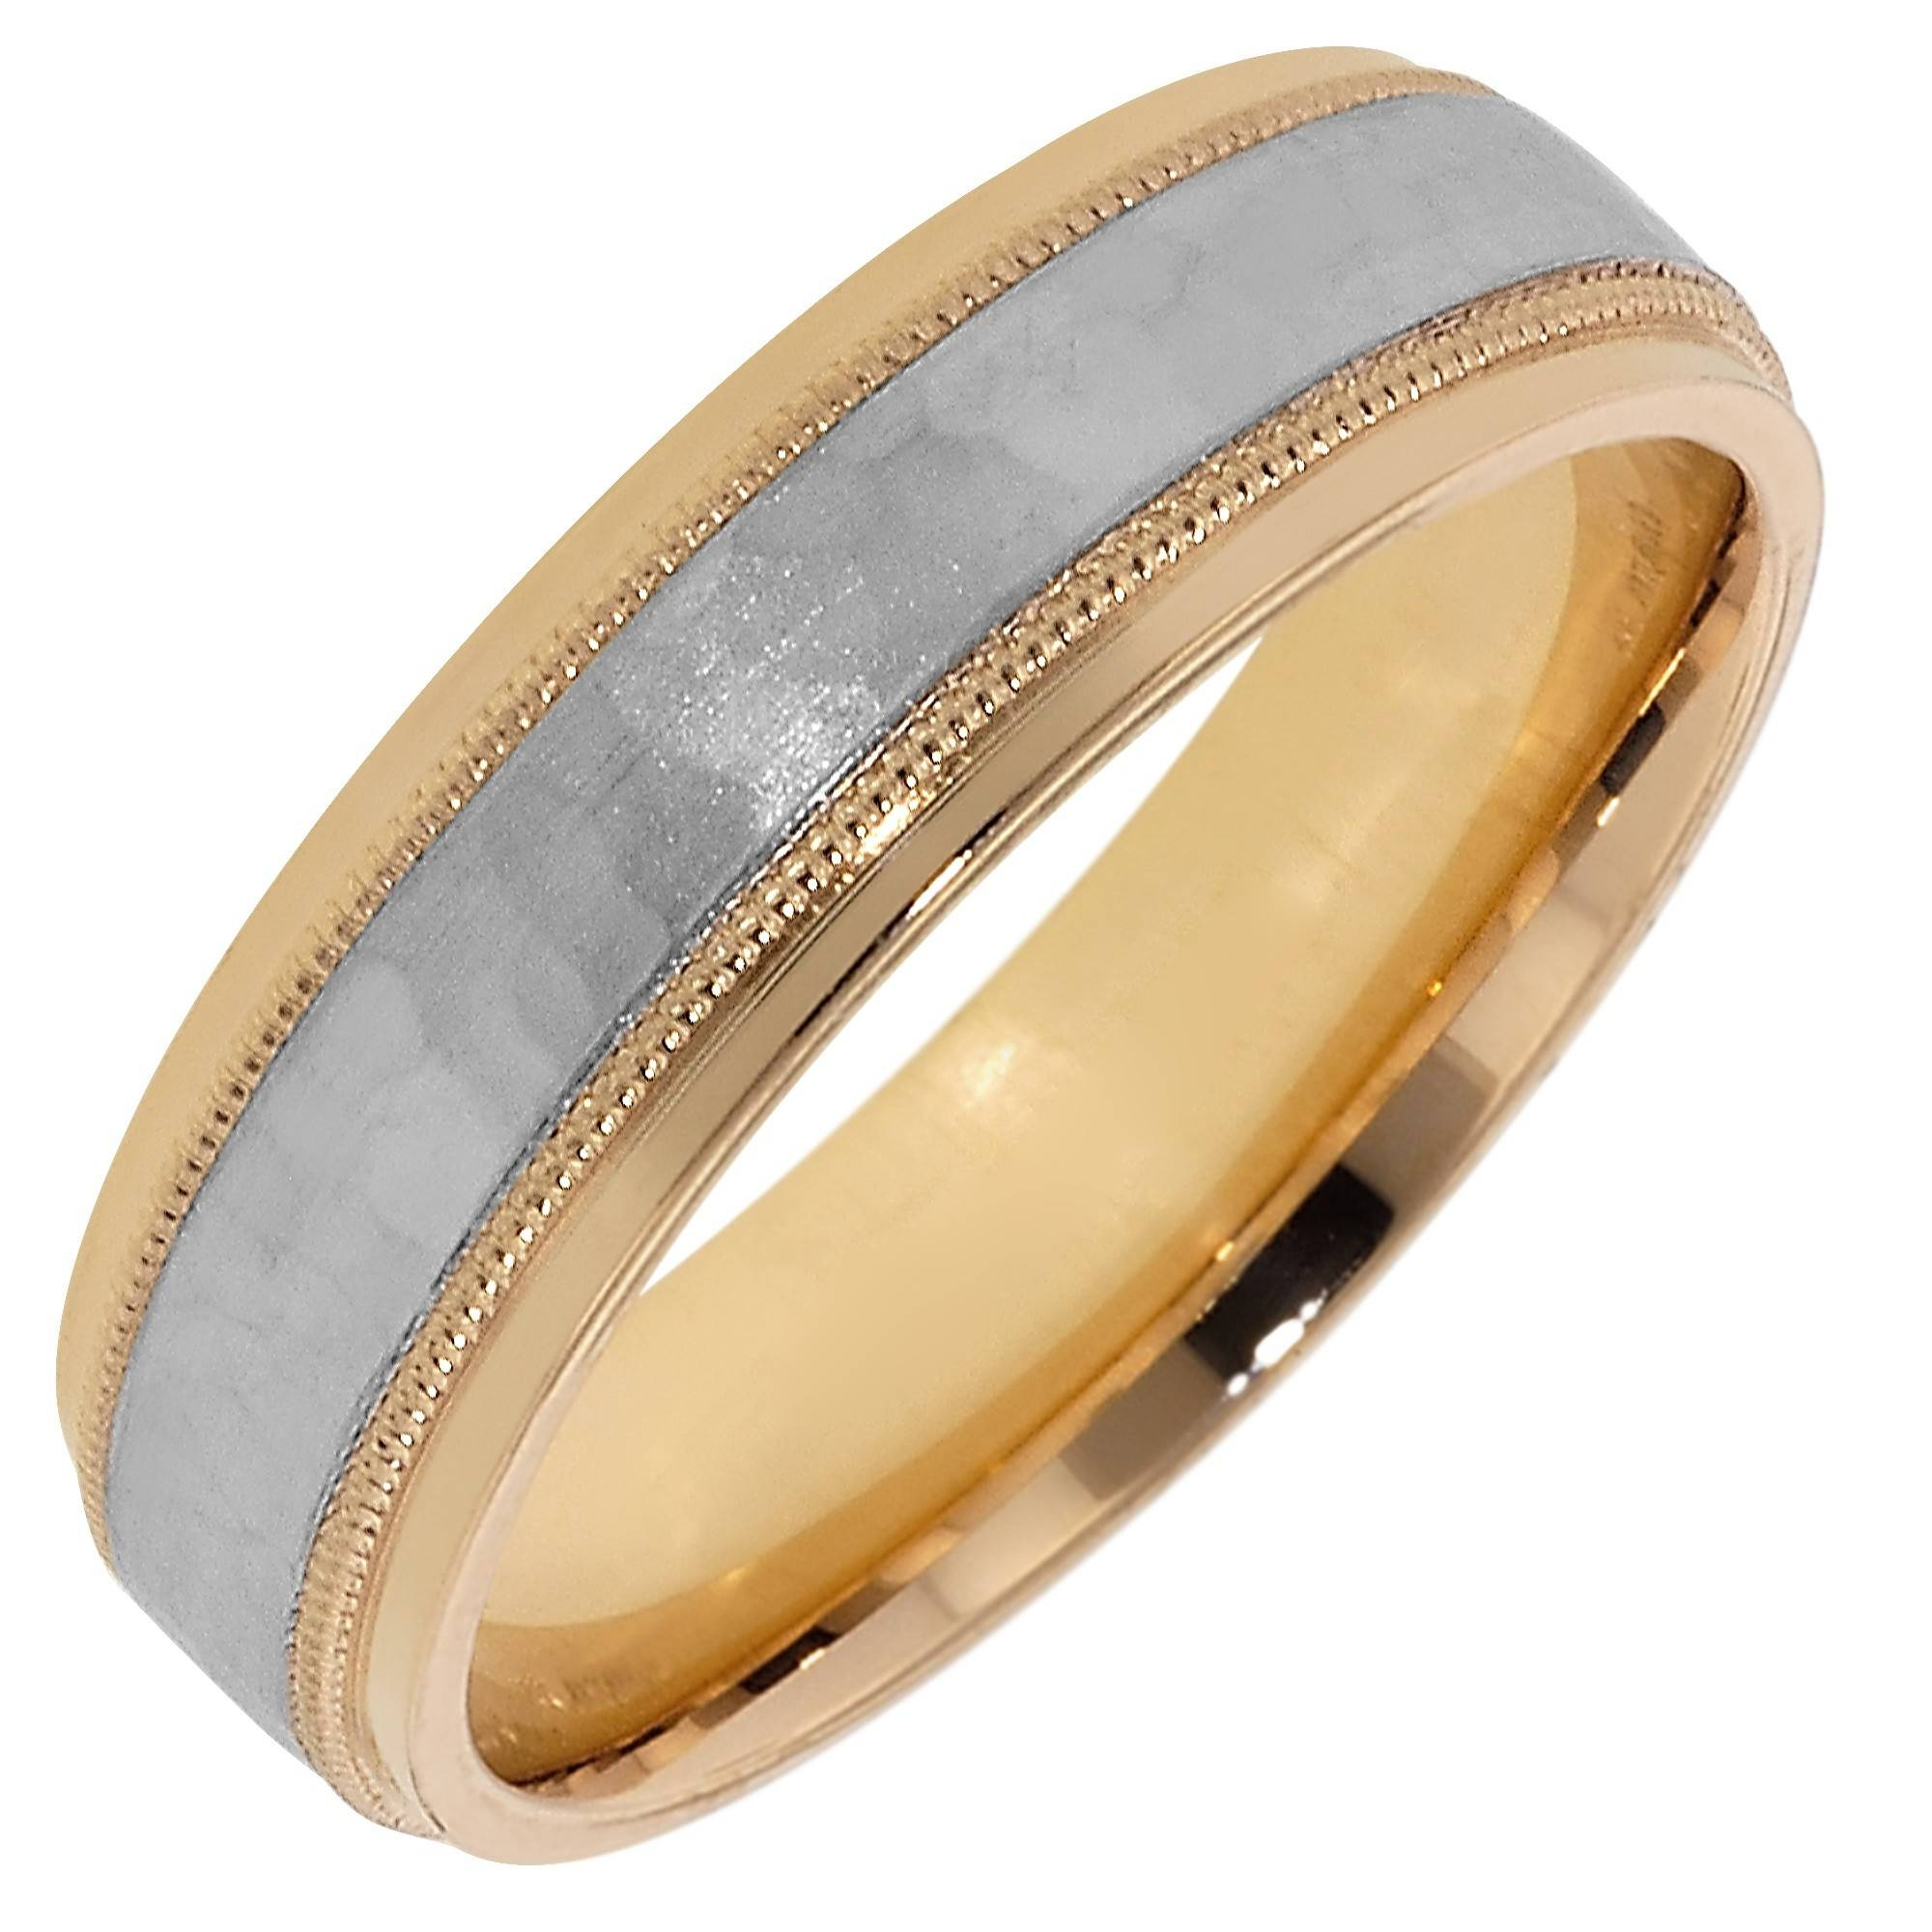 Artcarved Mens Hammered Wedding Band In 14Kt Yellow Gold And White Intended For Artcarved Men Wedding Bands (View 9 of 15)